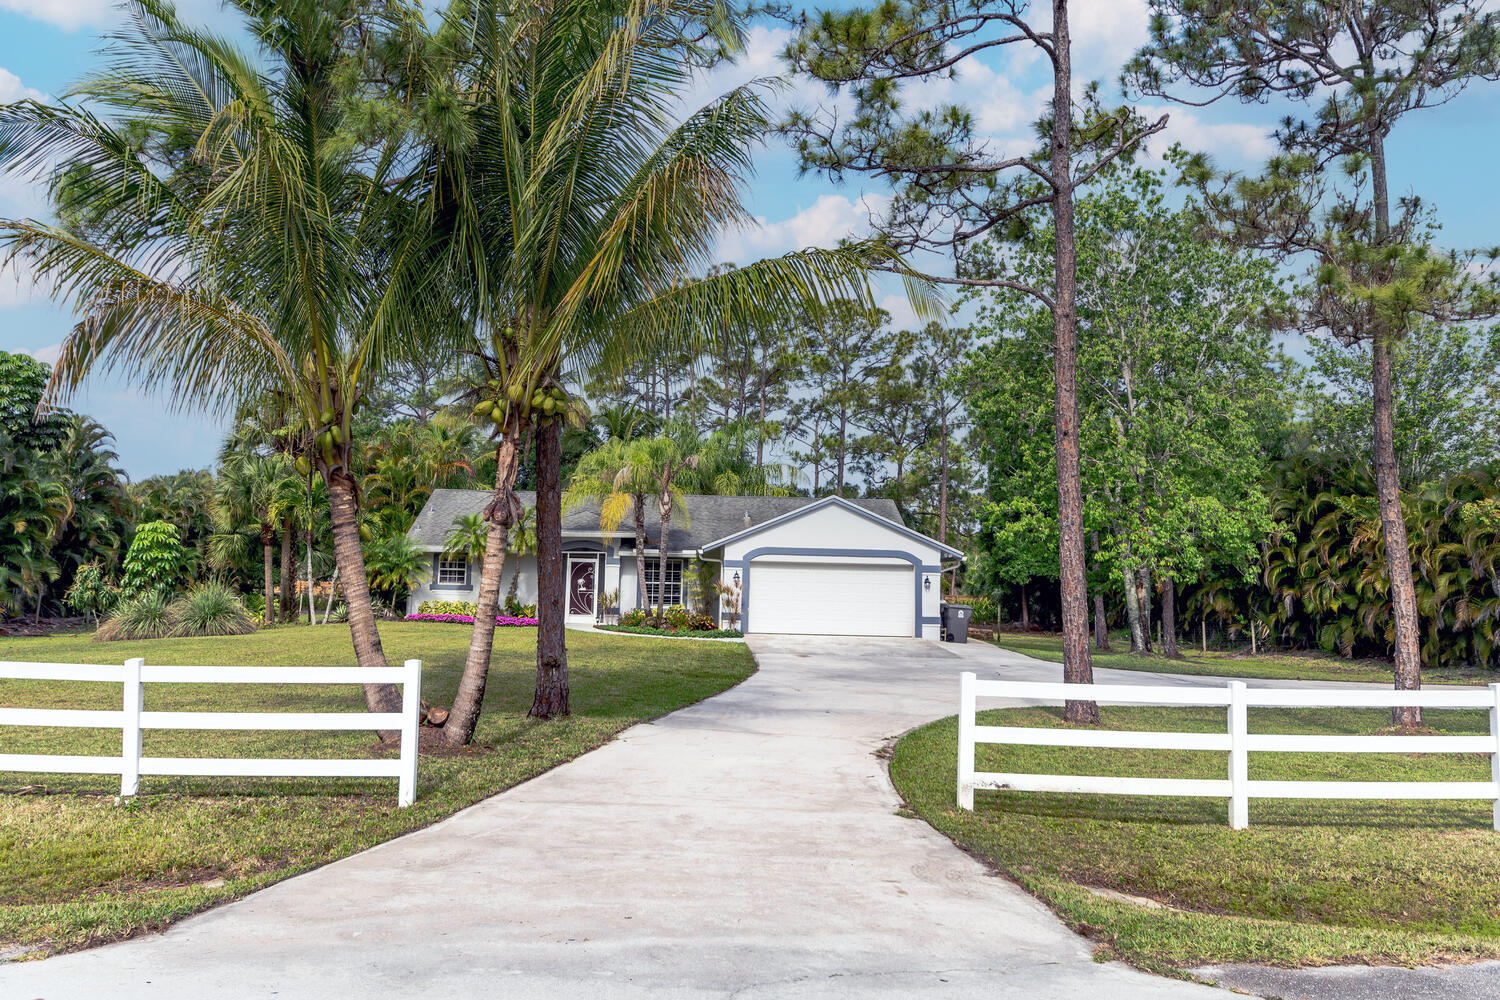 This immaculate 3 Bedroom, 2 Bath,  Pool home, CBS Construction, built in 1993,  fully fenced secluded back yard on 1.09 acres in highly desirable equestrian community, Jupiter Farms. Minutes to all the conveniences including major highways. 25 min to PBI airport. AC & HWH 2yrs old. Expansive concrete driveway. Pool is screened, solar heated.12x20 shed with electric and water connected.  Reverse Osmosis water system in home.New 6 zone sprinkler system, Lush tropical landscaping.